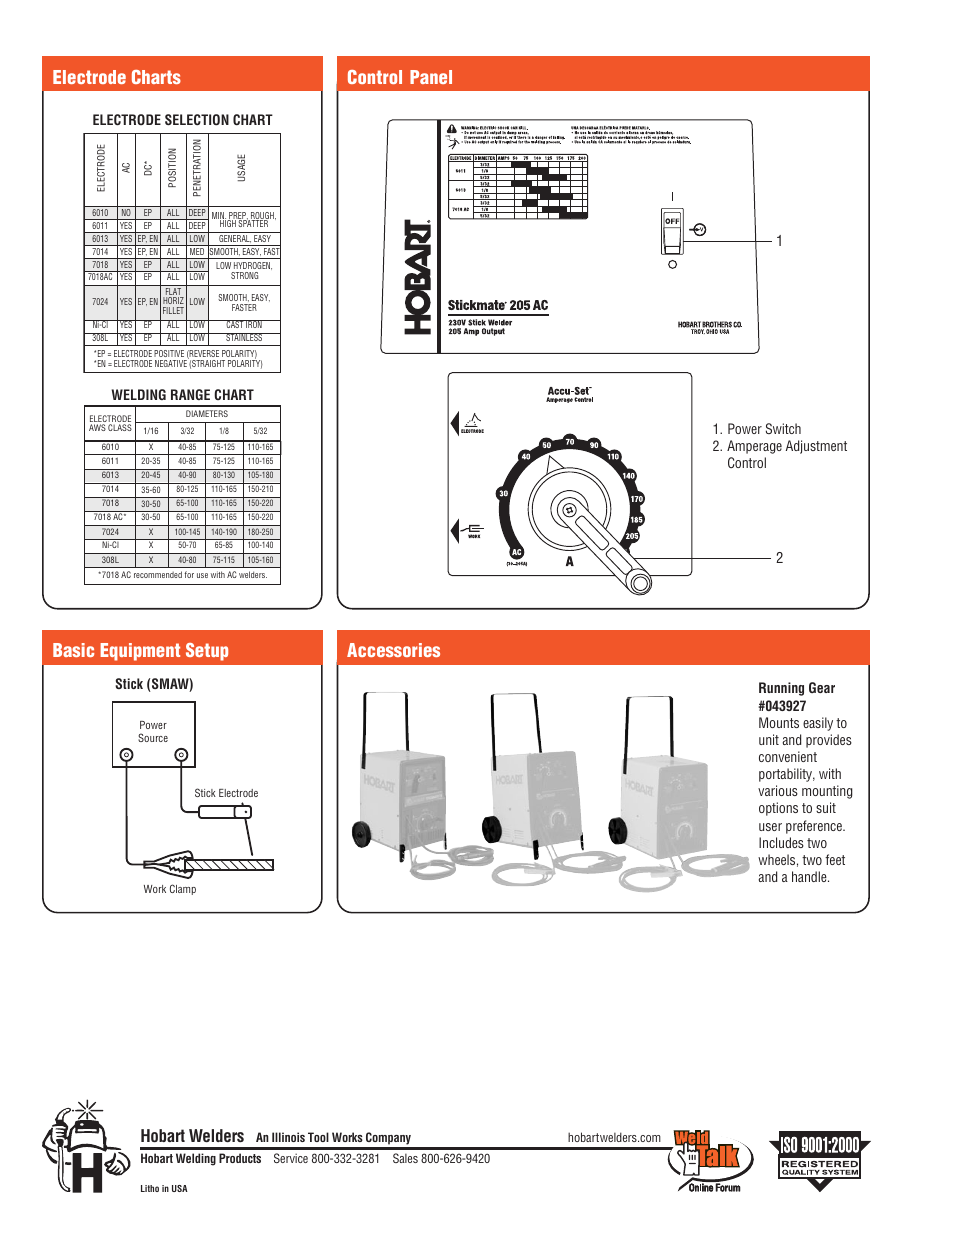 Control Panel Accessories Electrode Charts Basic Equipment Setup Welding Diagram Hobart Welders Products Stickmate 205 Ac User Manual Page 2